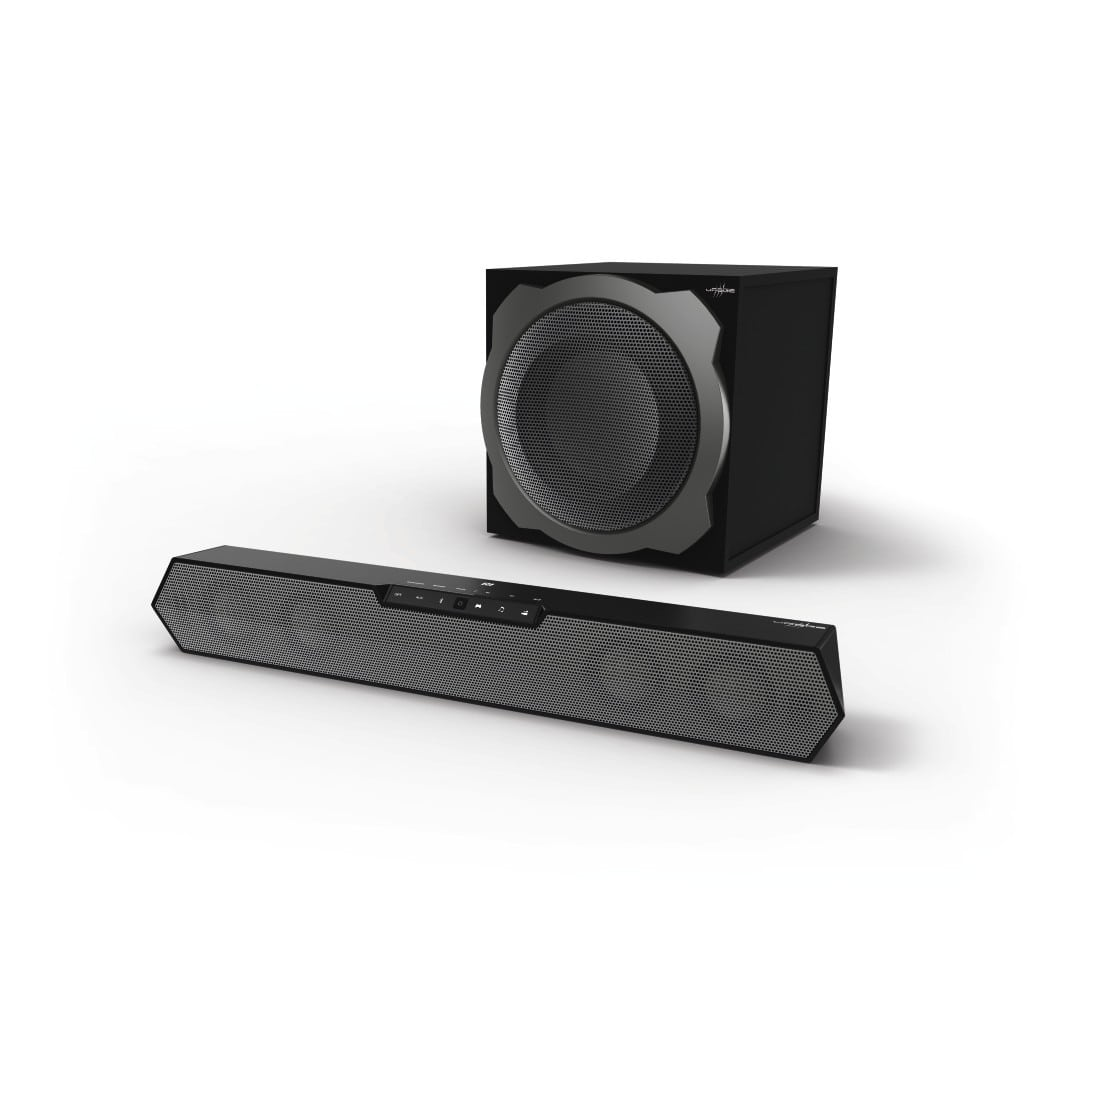 "Hama 00113776 Wireless-Multichannel-Gaming-Sound-System ""uRage SoundZbar 2.1 Unleashed"" für 199,00 Euro"